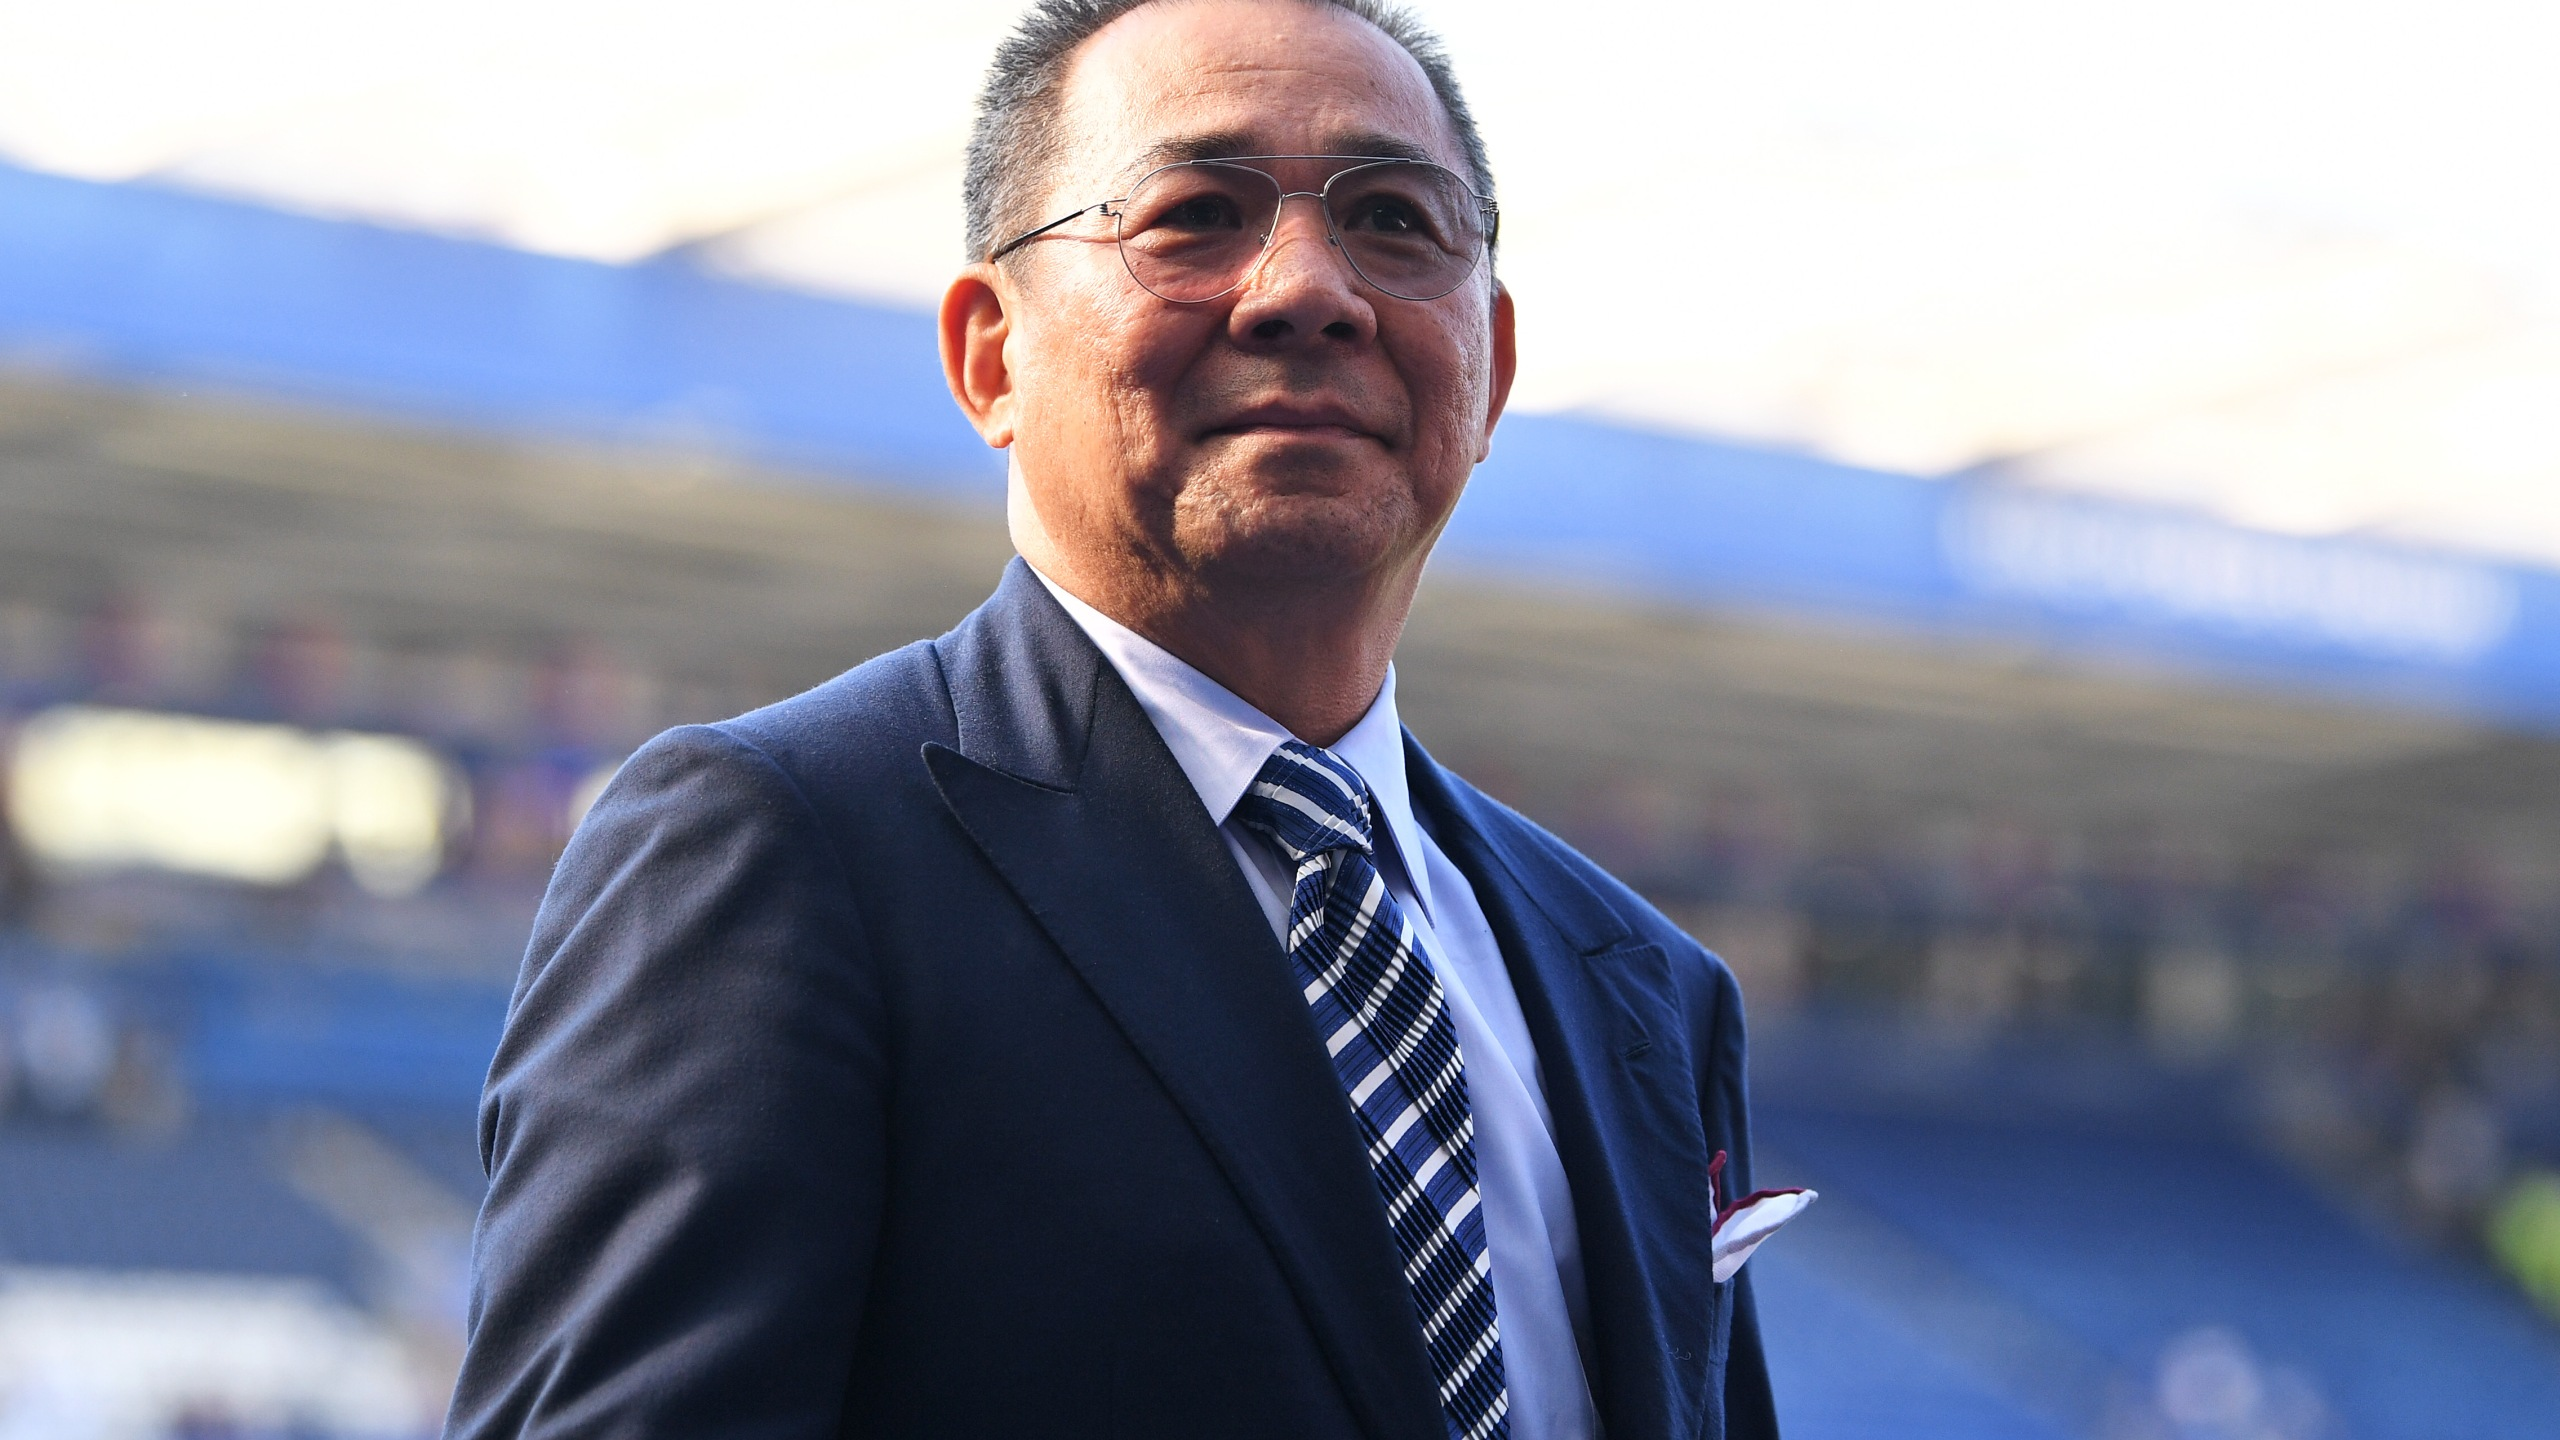 Vichai Srivaddhanaprabha looks on following the Premier League match between Leicester City and West Ham United at The King Power Stadium on May 5, 2018 in Leicester, England. (Credit: Michael Regan/Getty Images)